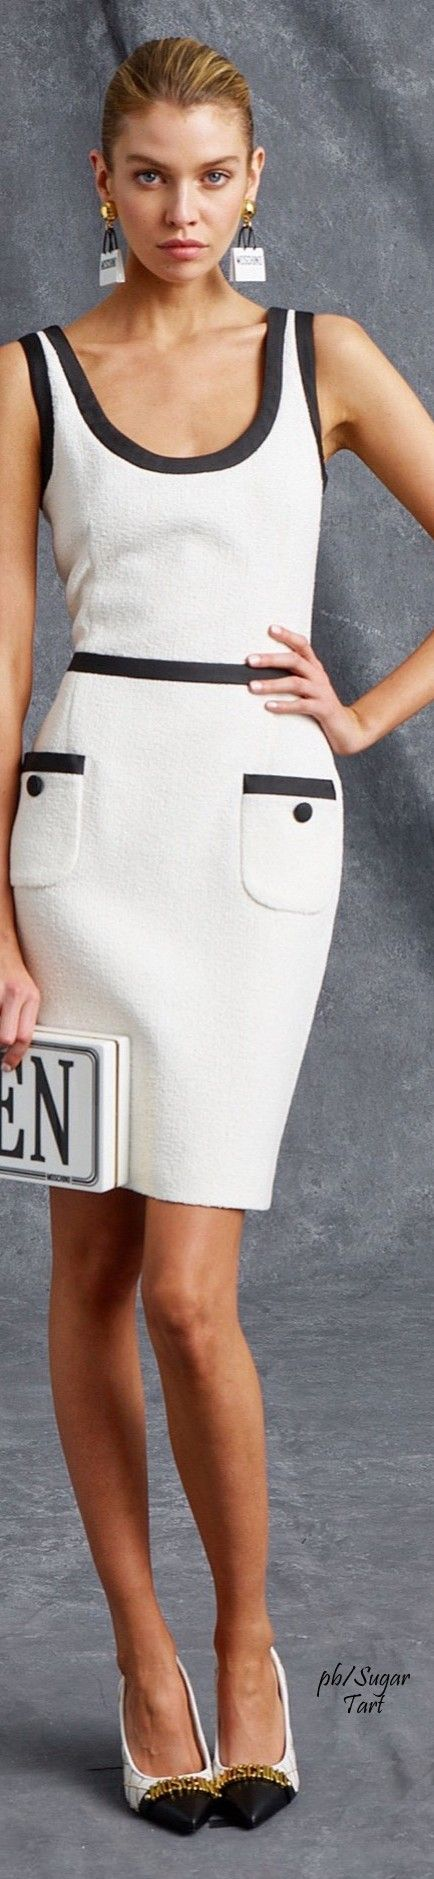 Moschino Resort 2016 White suit. Elegant formal women fashion outfit clothing style apparel @roressclothes closet ideas